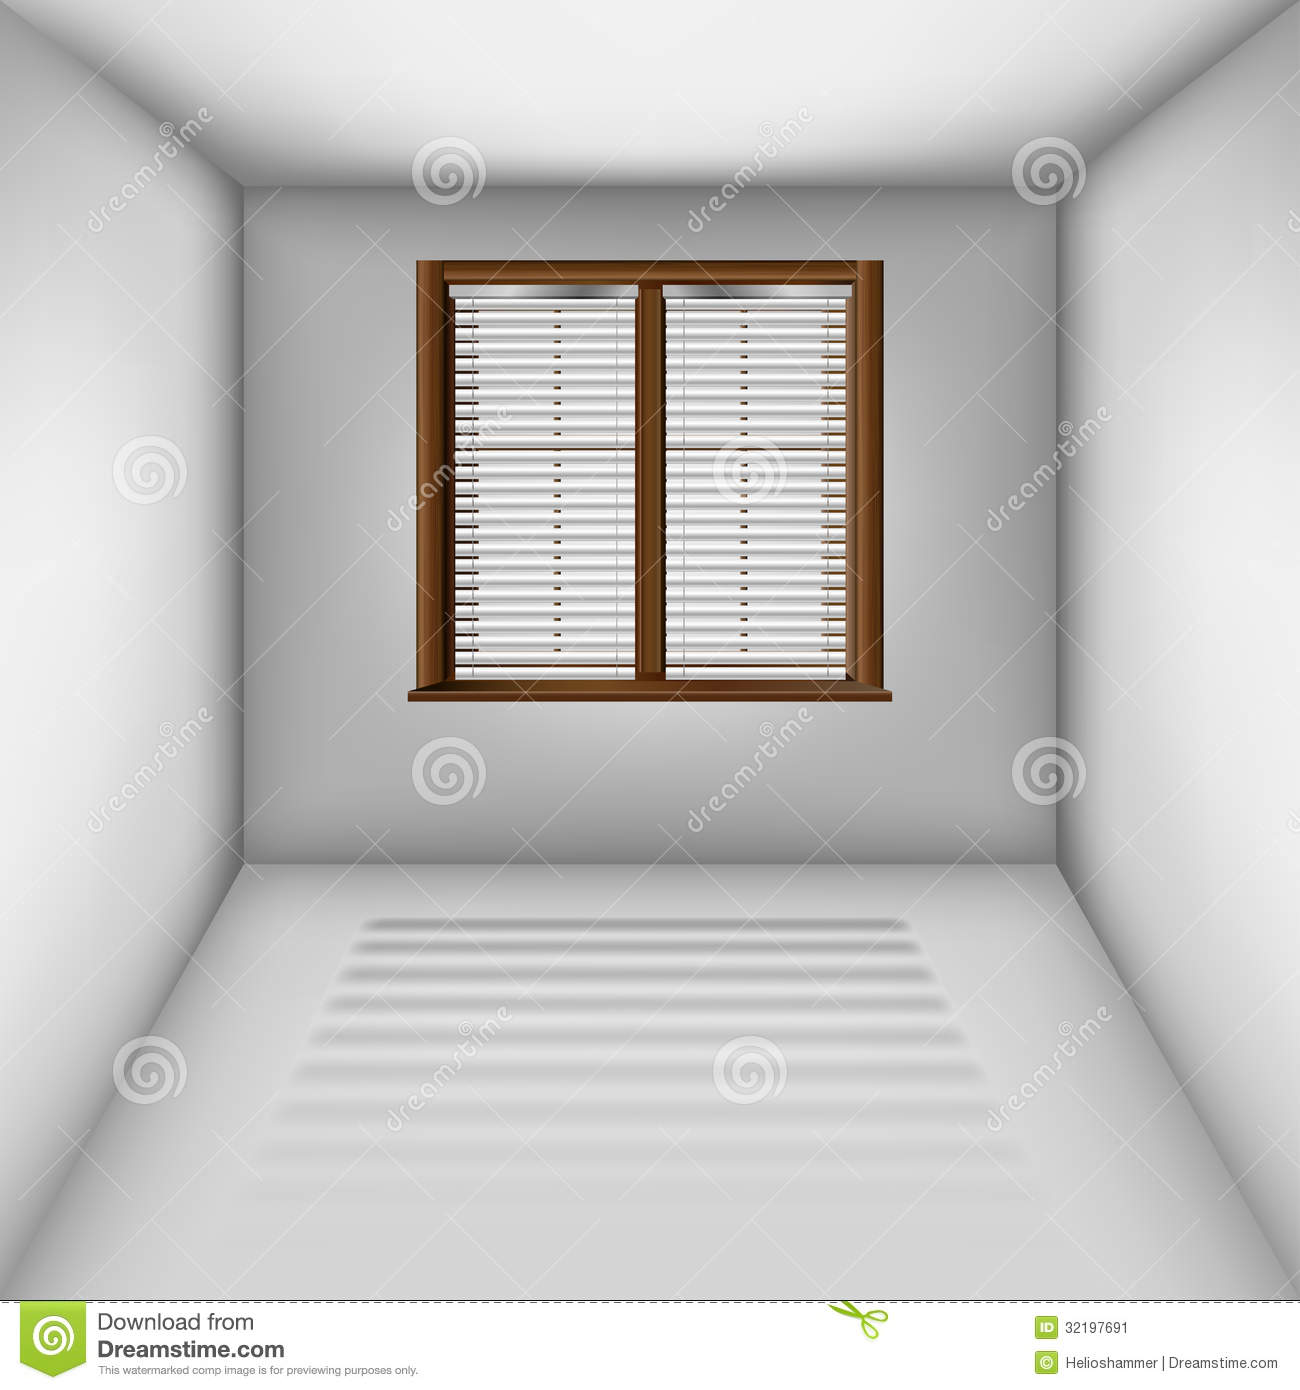 Simple house decoration living room - Empty Room With Window And Blinds Stock Image Image